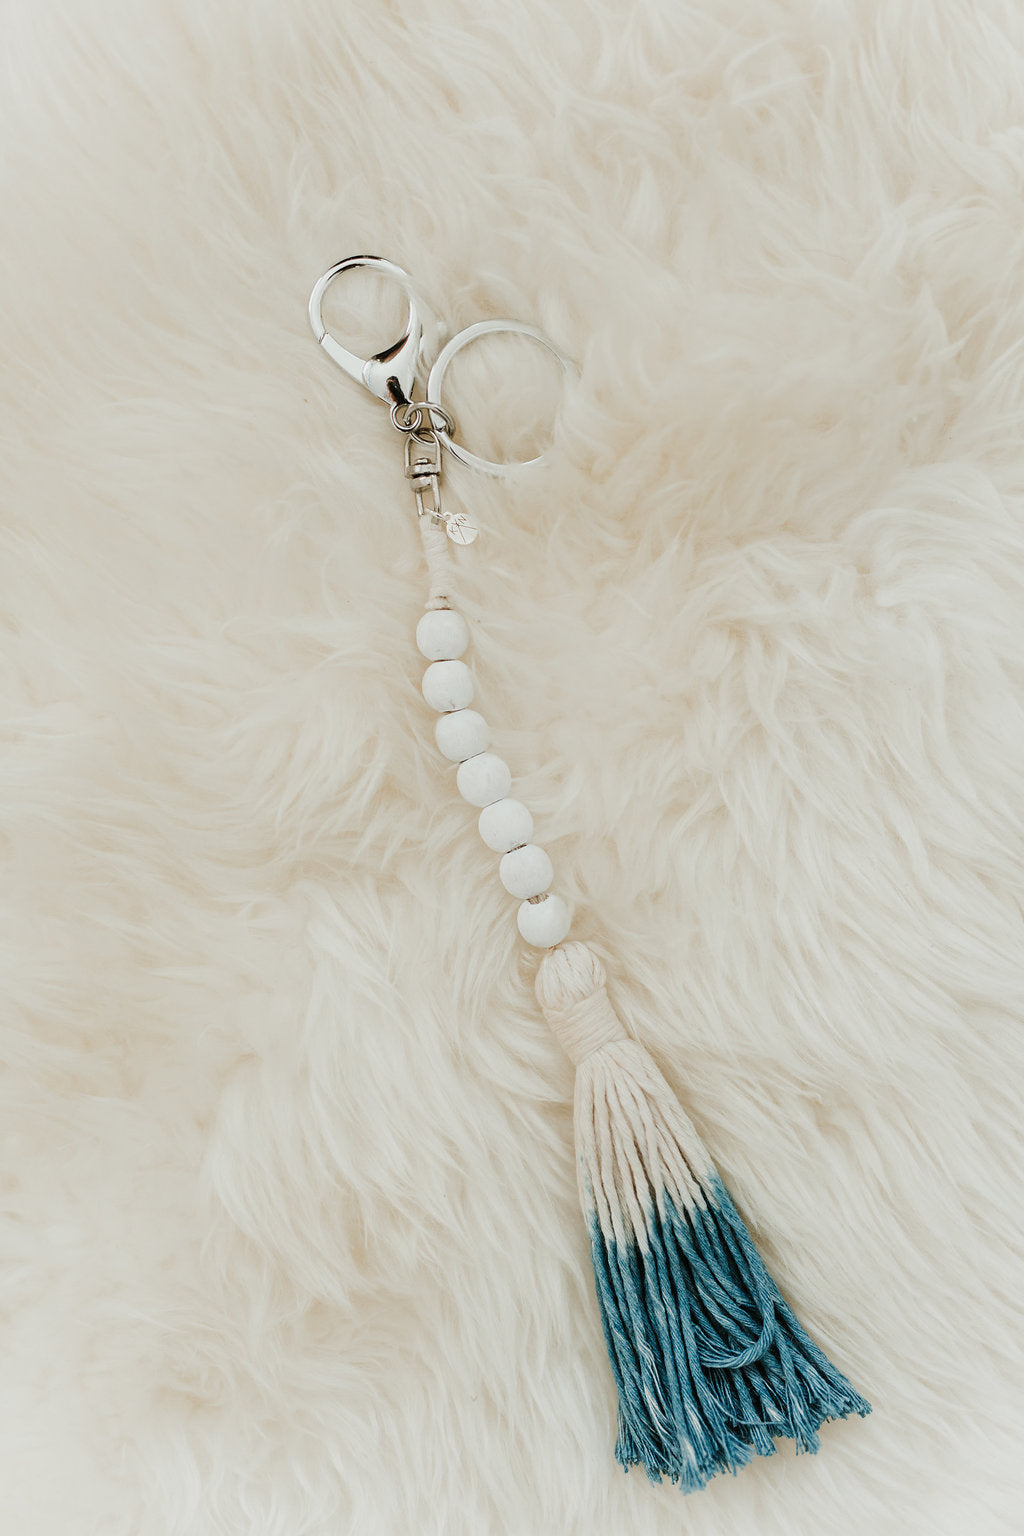 LUCKY 7 Bead Garland Keychain (All White with Shibori) (Silver)